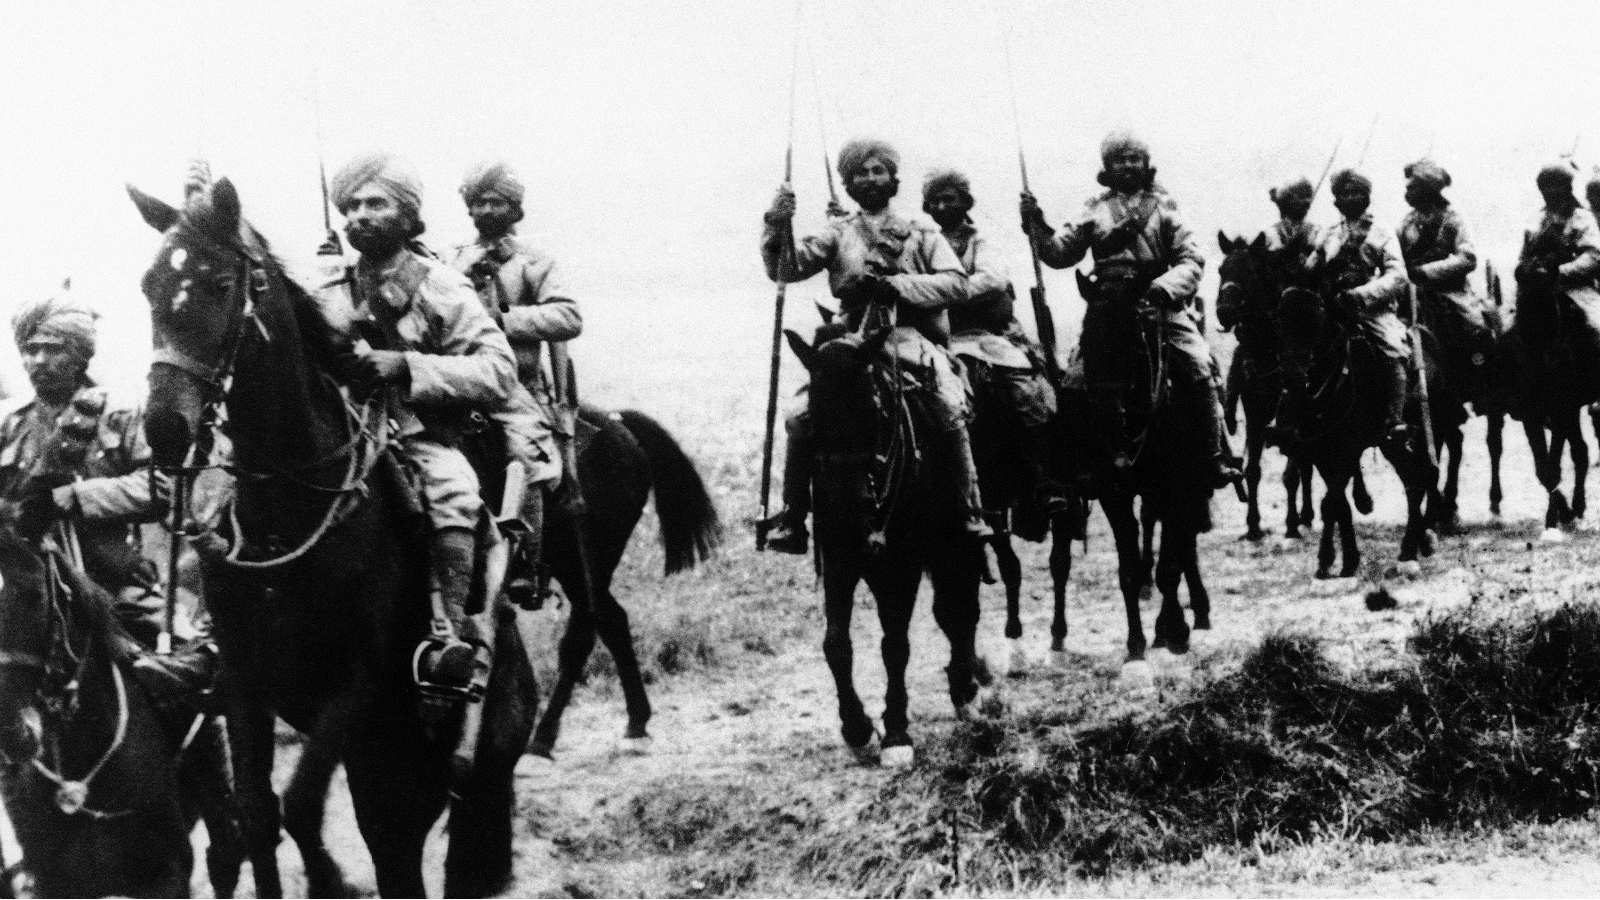 Britain's famous Indian cavalry moving up into the round of action shortly after their arrival on the Western front in an undated photo.